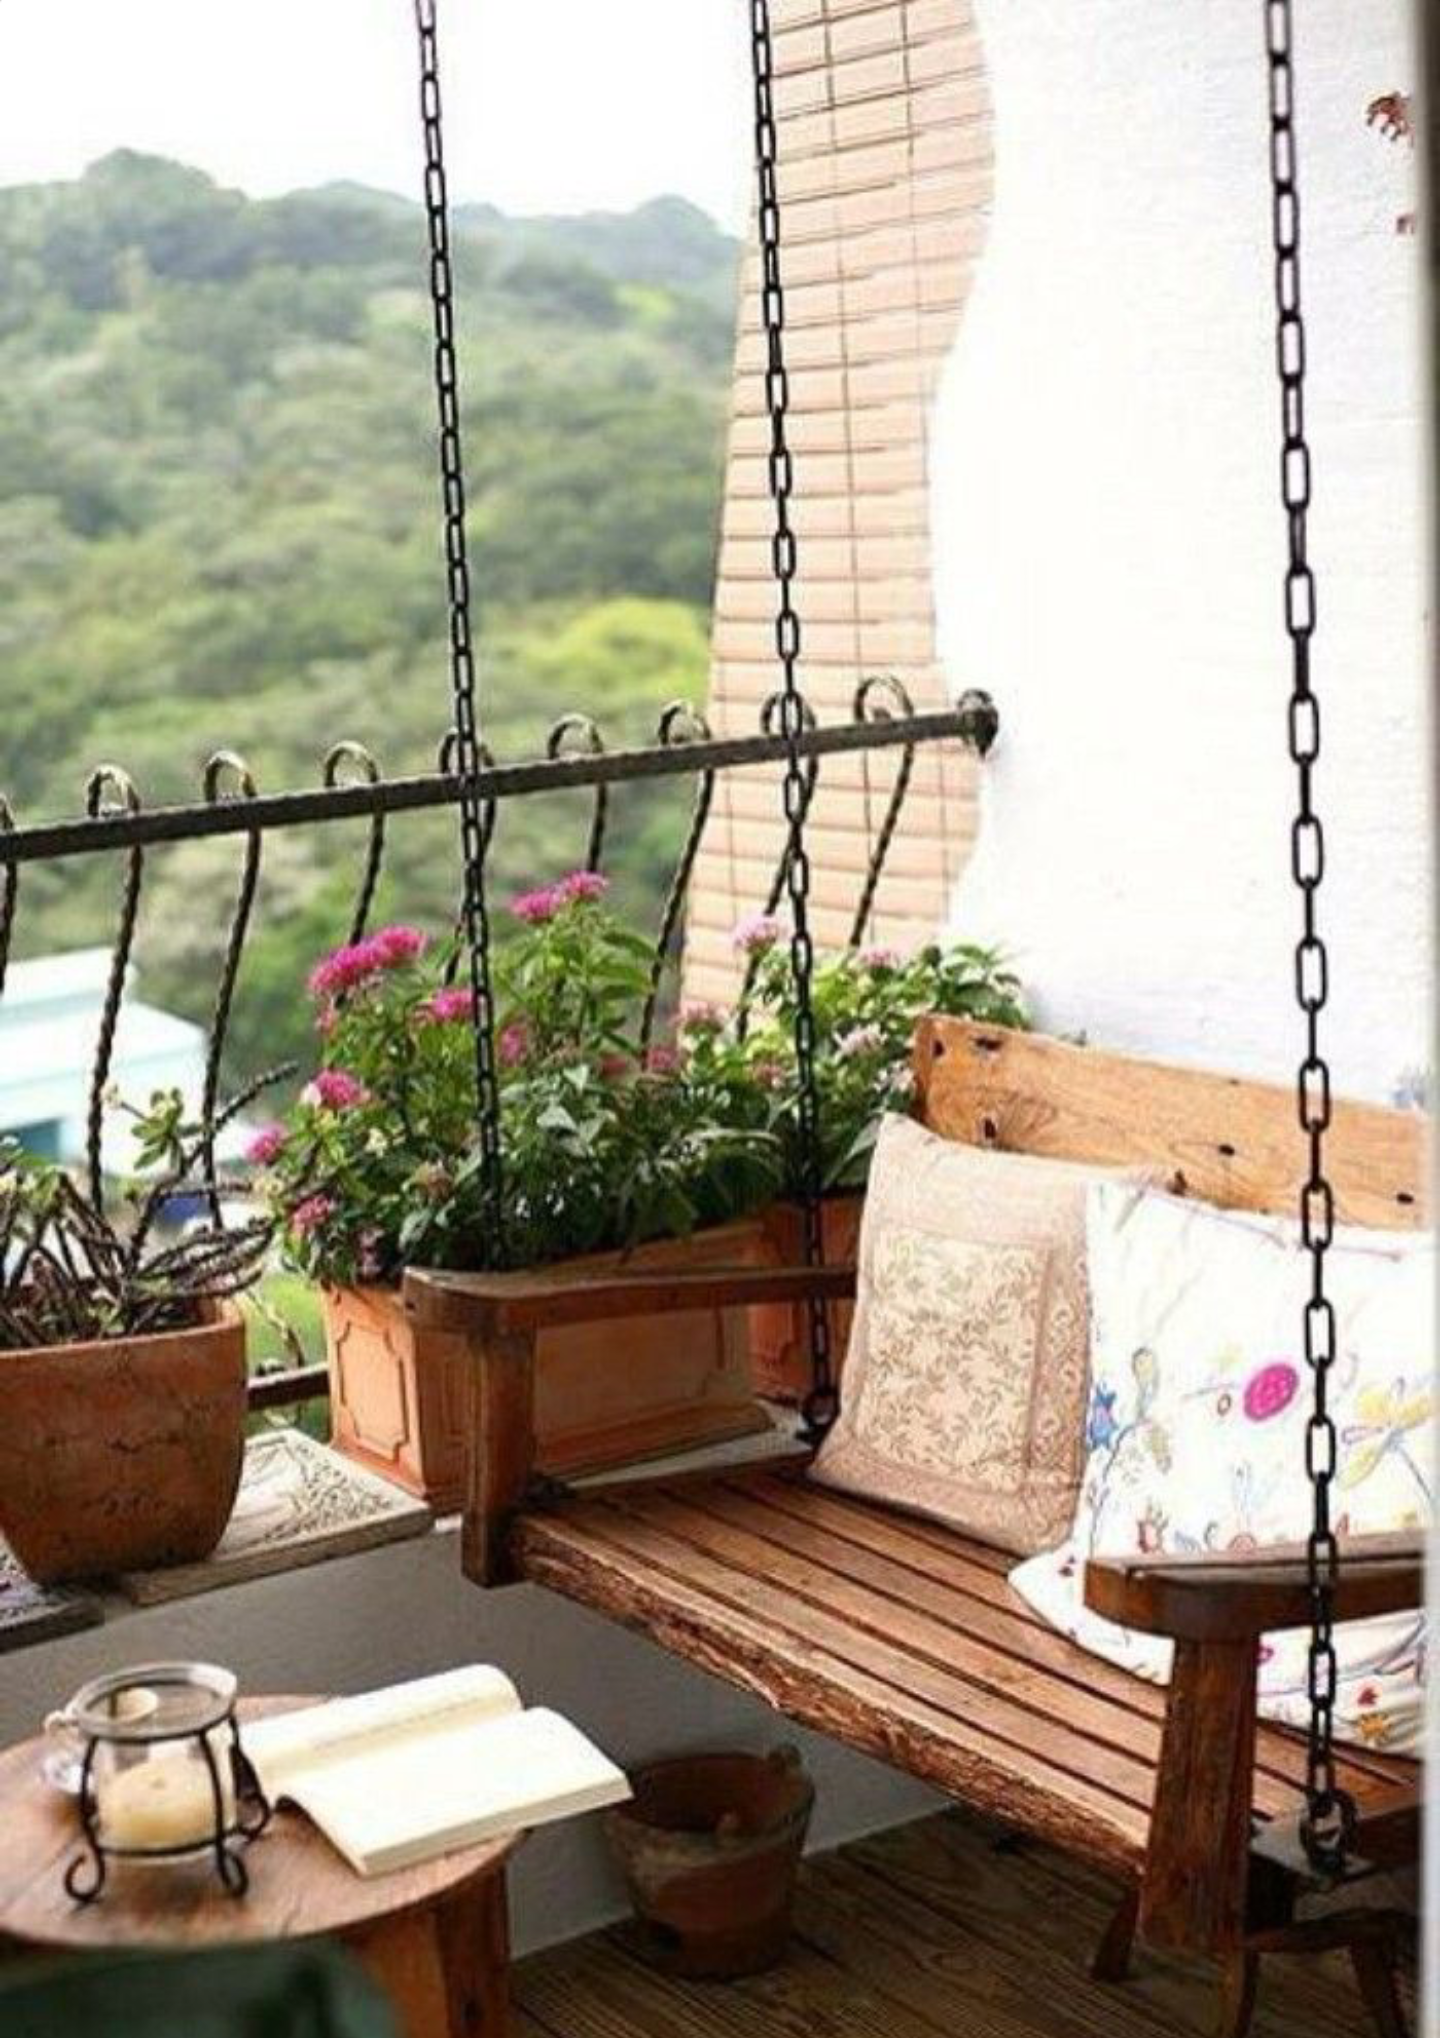 Apartment balcony ideas pictures to pin on pinterest - Explore Apartment Balcony Decorating And More